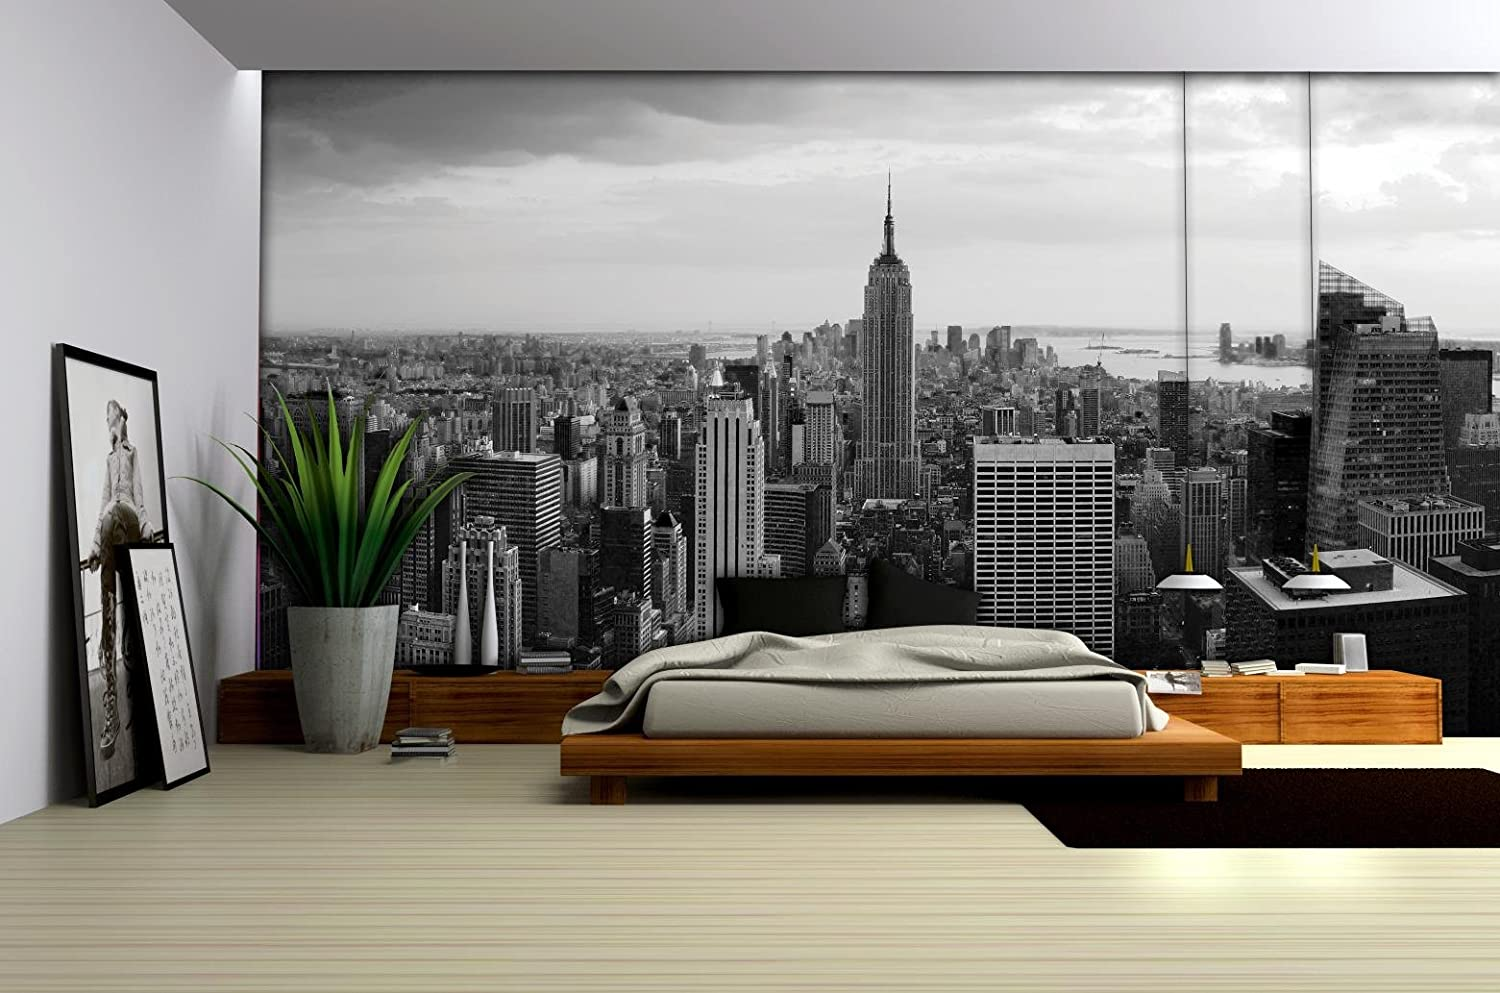 New York City Skyline Black And White Wallpaper Mural Amazon Com